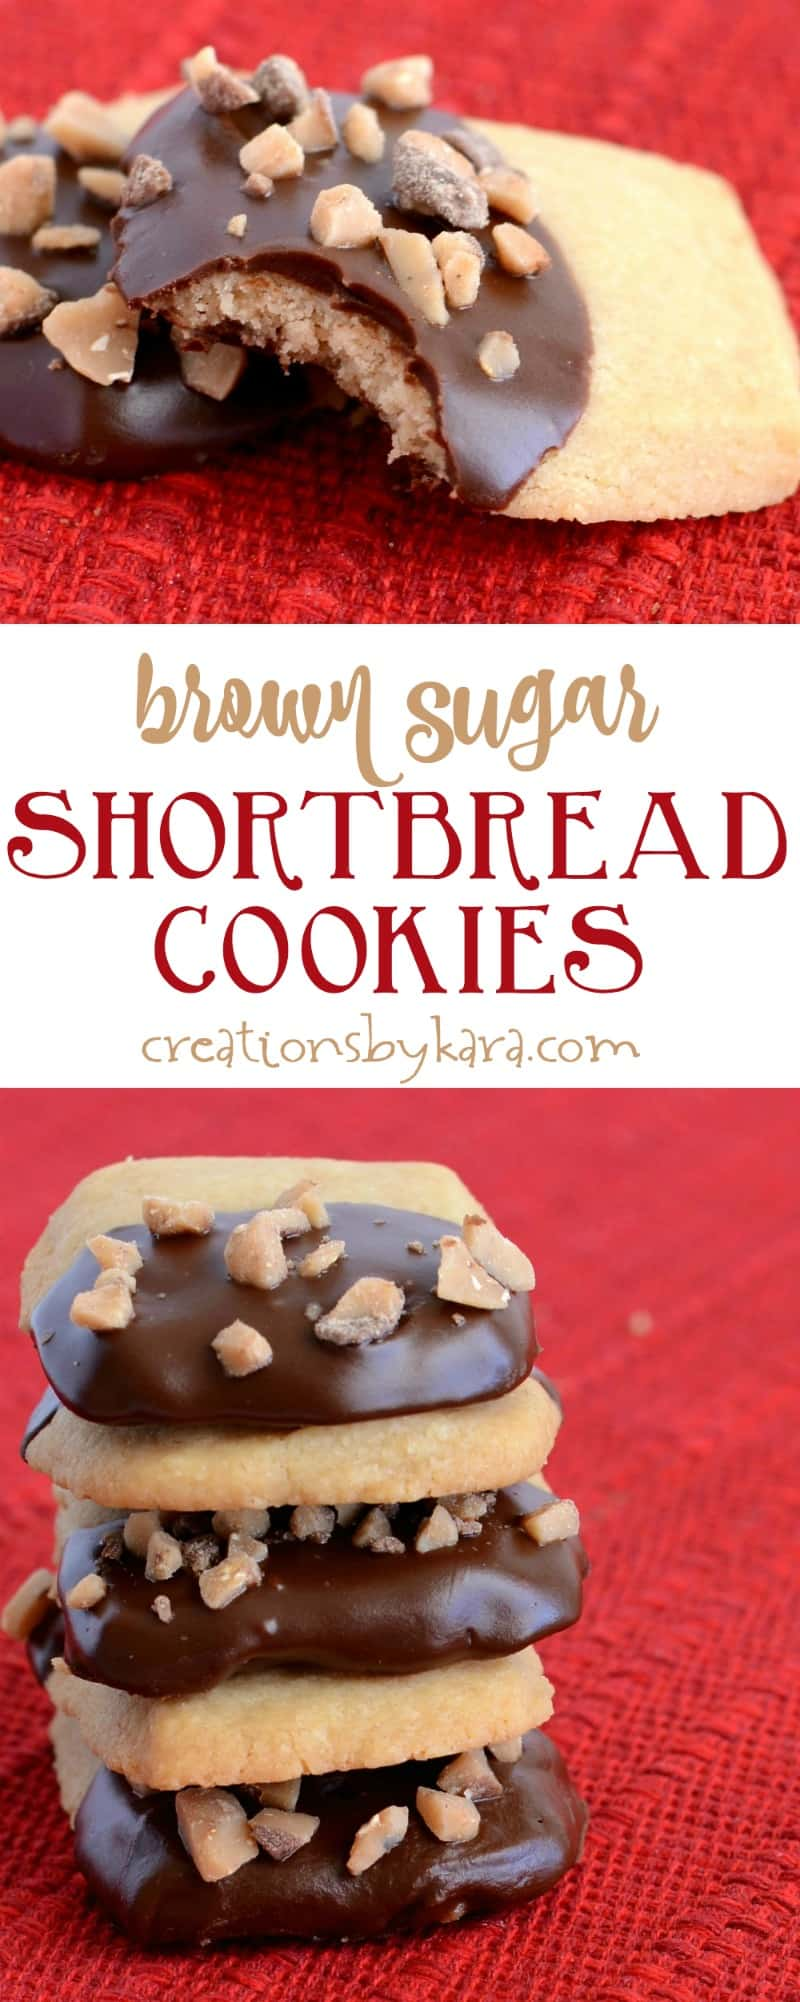 Brown Sugar Shortbread Cookies dipped in chocolate and sprinkled with toffee. A perfect cookie recipe.